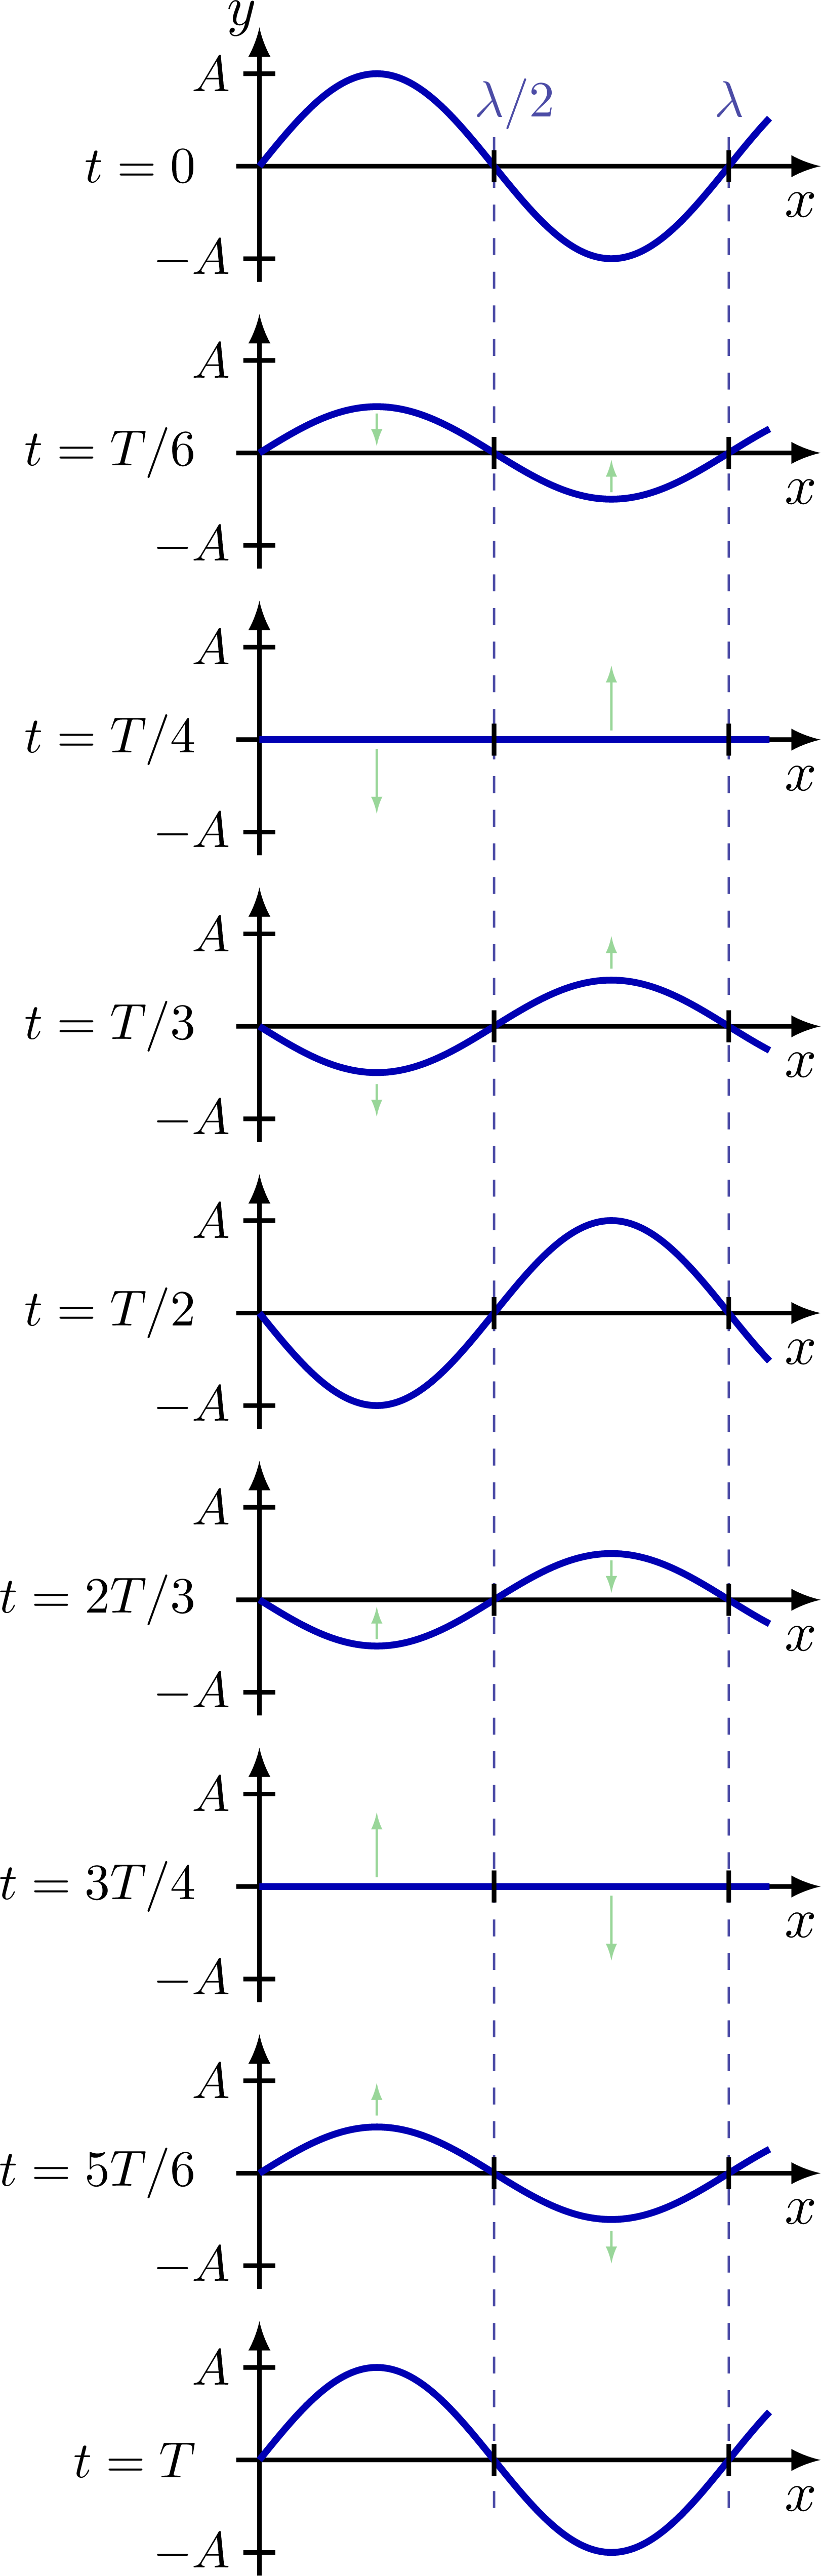 waves_standing-002.png